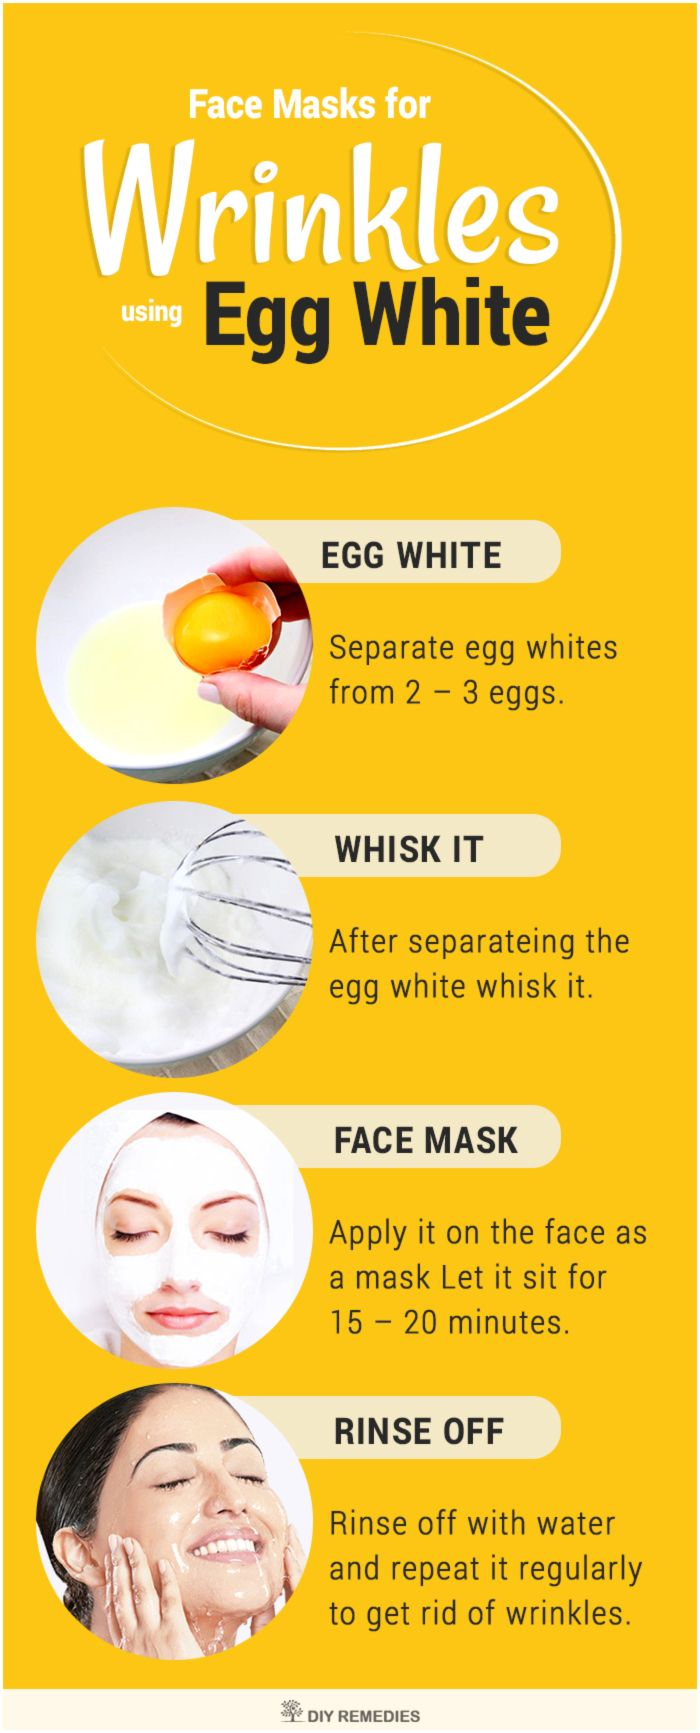 Egg White Face Masks for Wrinkles